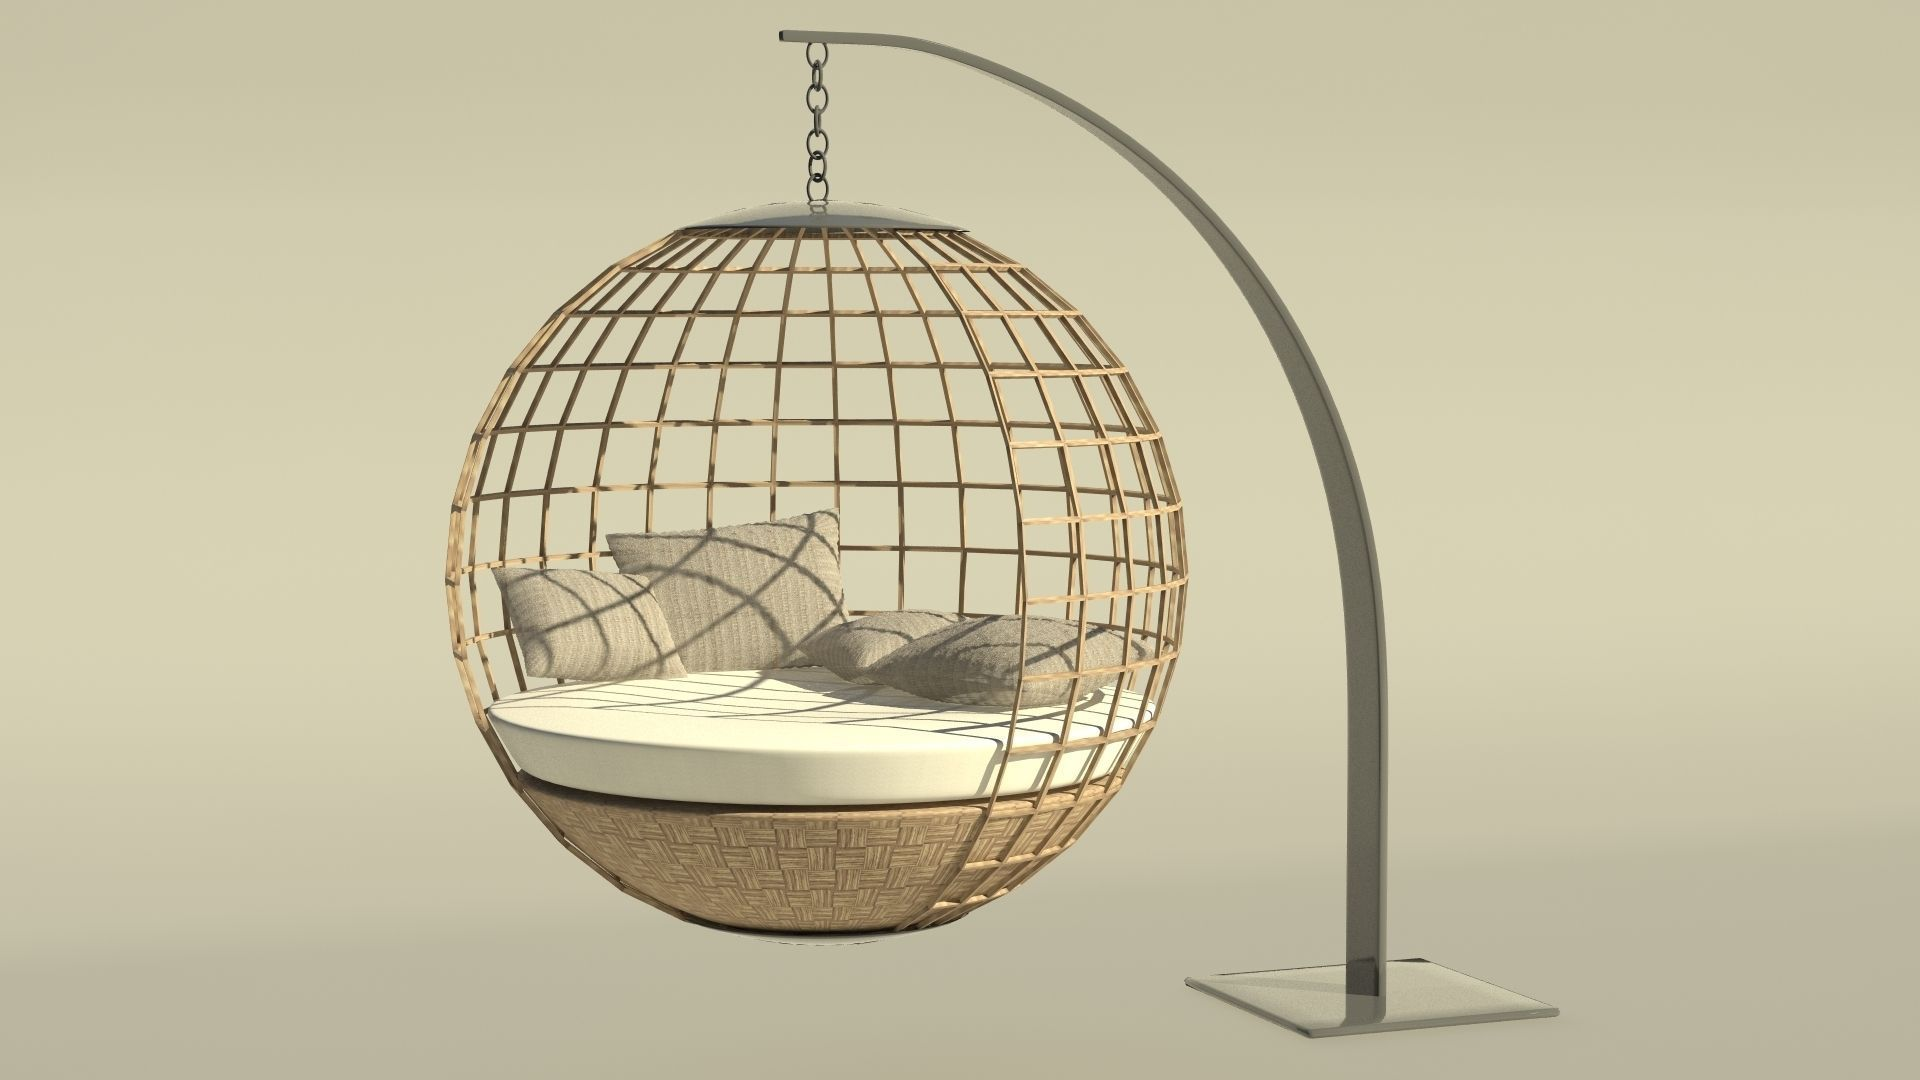 ... Daybed Hanging Chair 3d Model Max Obj 3ds Mtl Mat 2